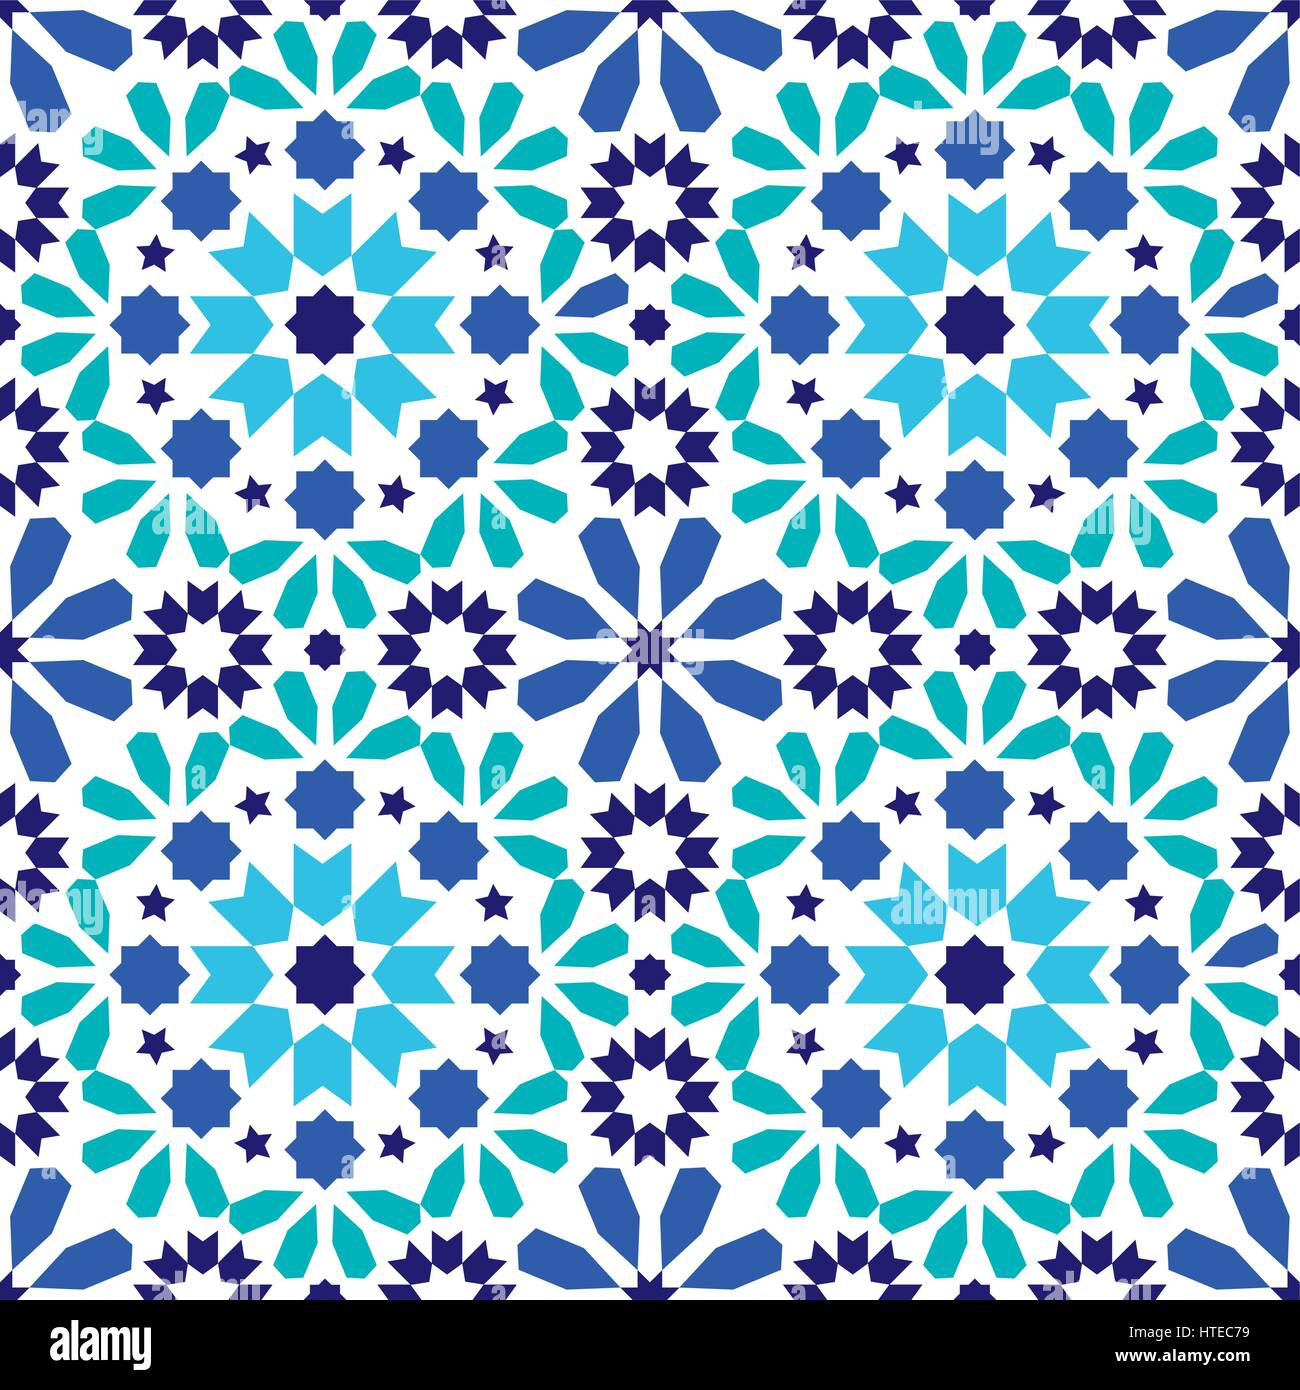 Vector of moroccan tile seamless pattern tile for design tile - Geometric Seamless Pattern Moroccan Tiles Design Seamless Blue And Turquoise Tile Background